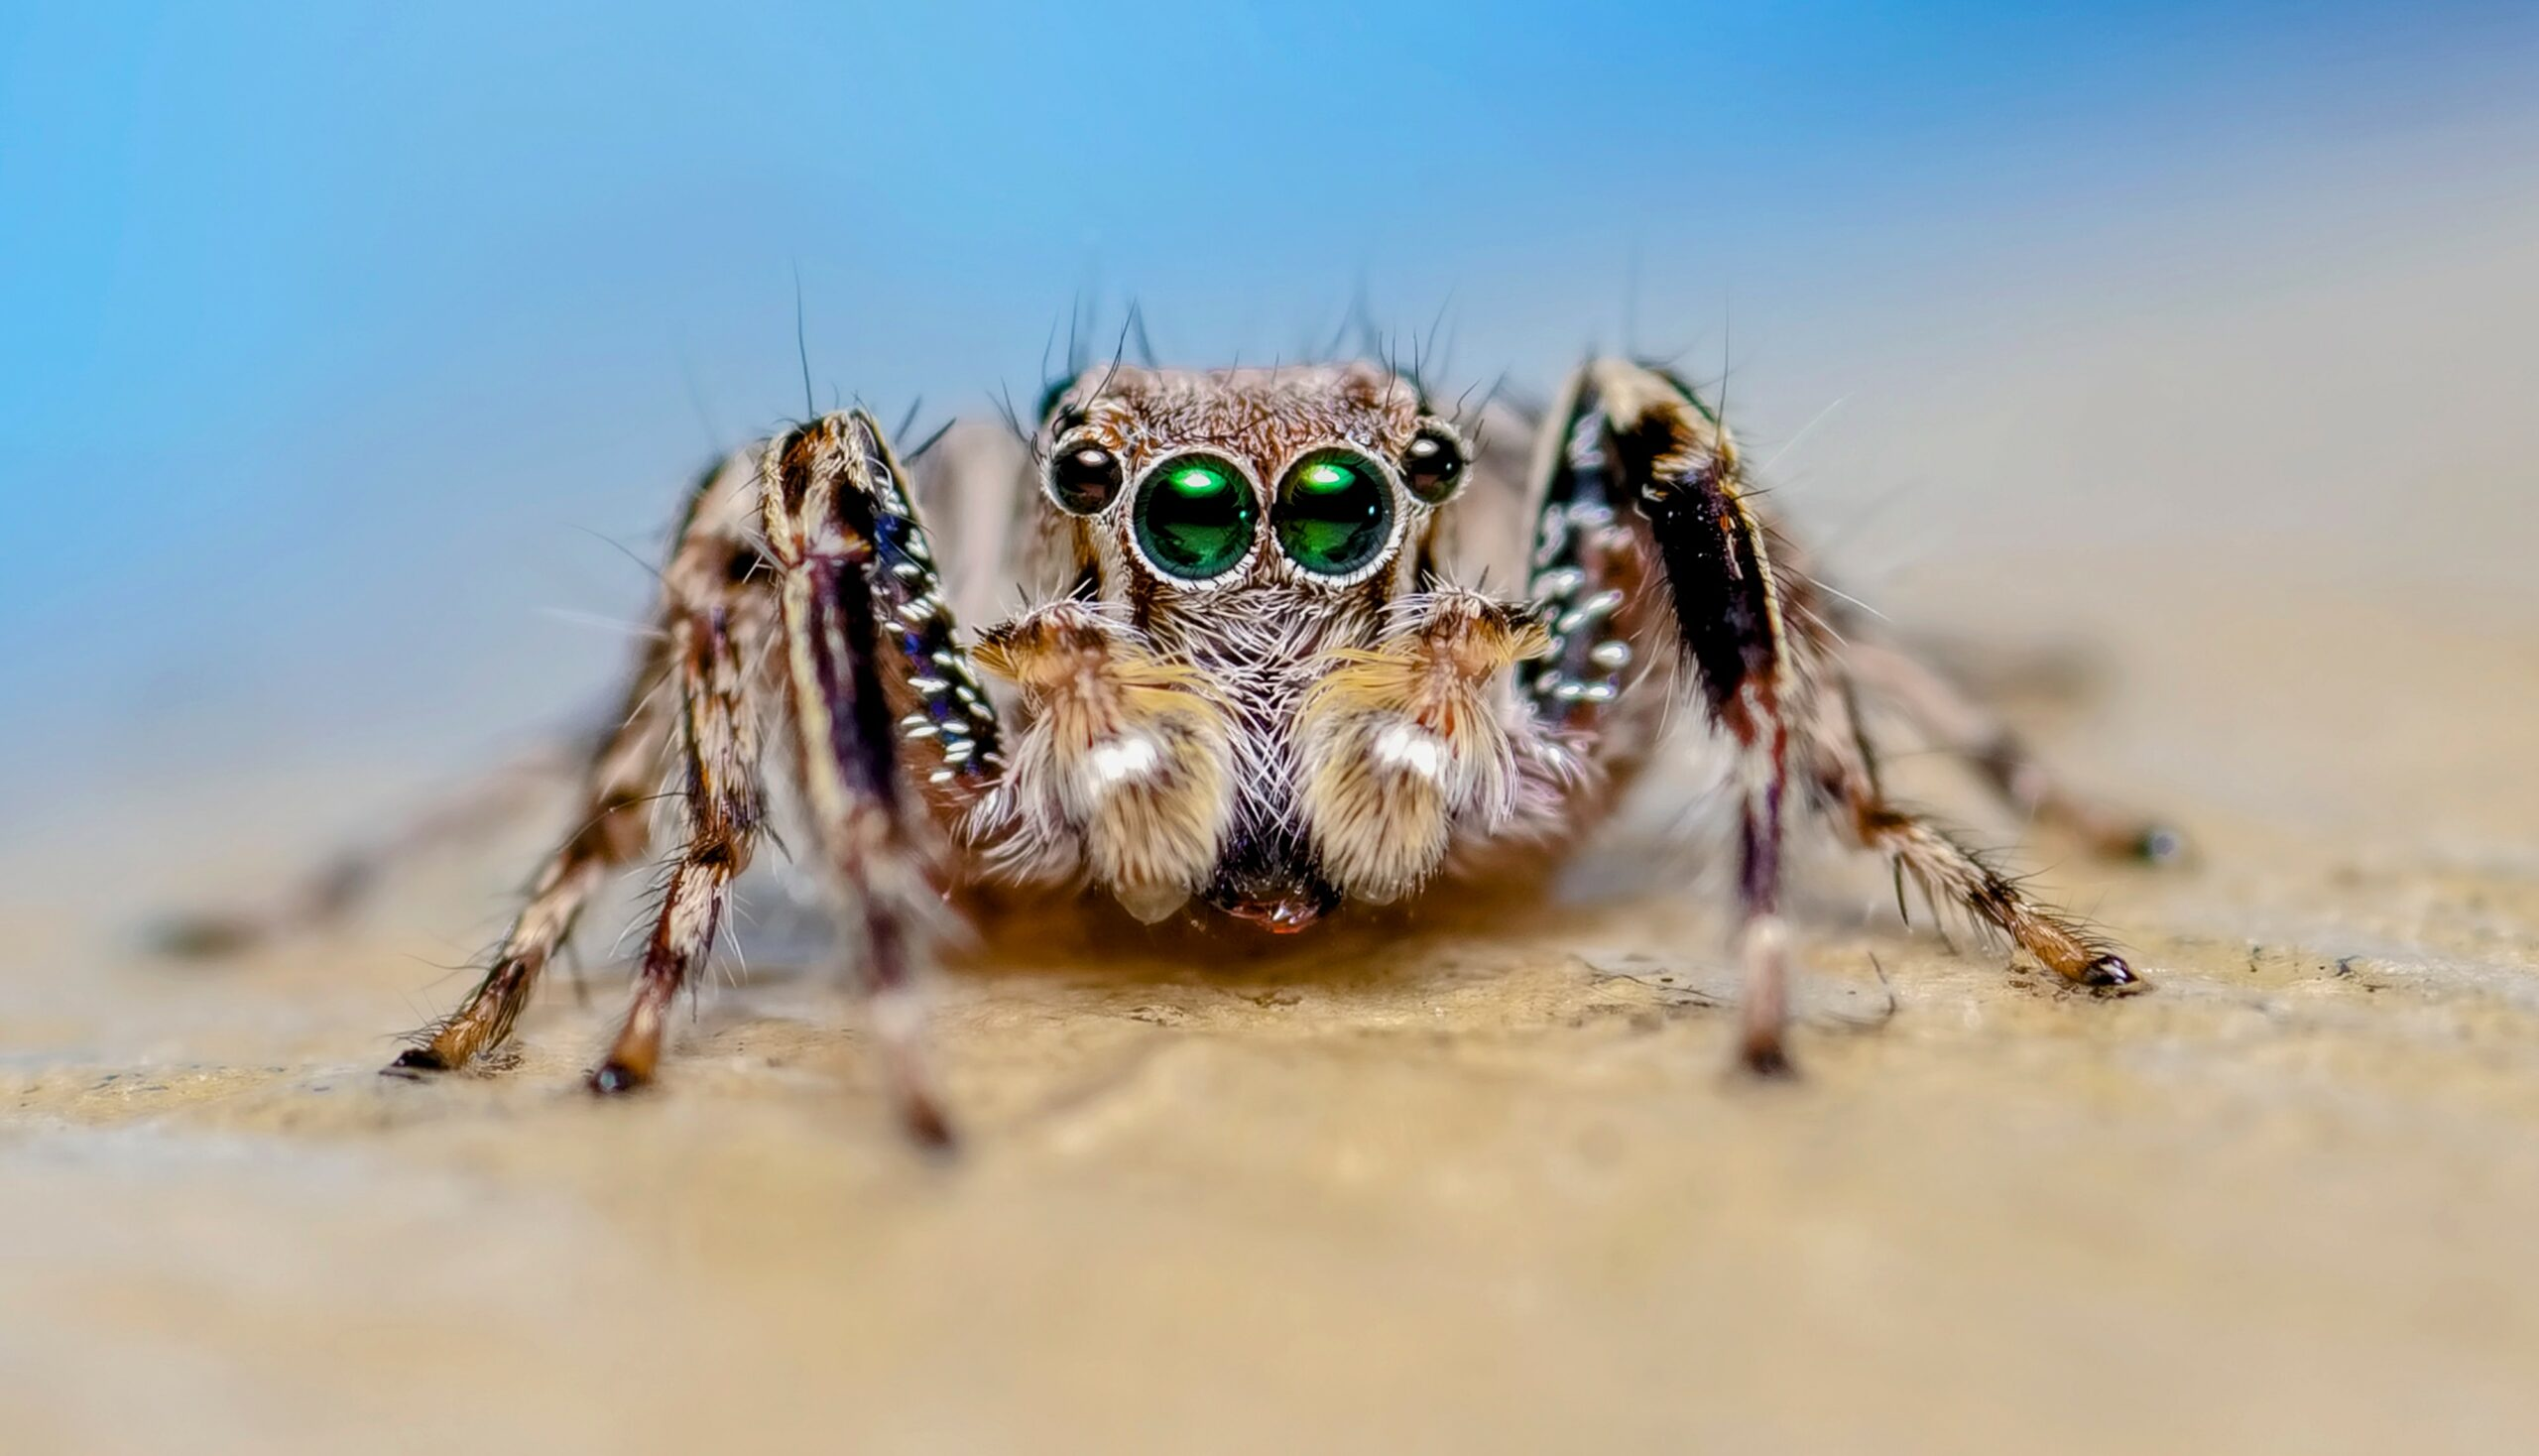 Jumping spiders know the difference between animals and objects • Earth.com - Earth.com